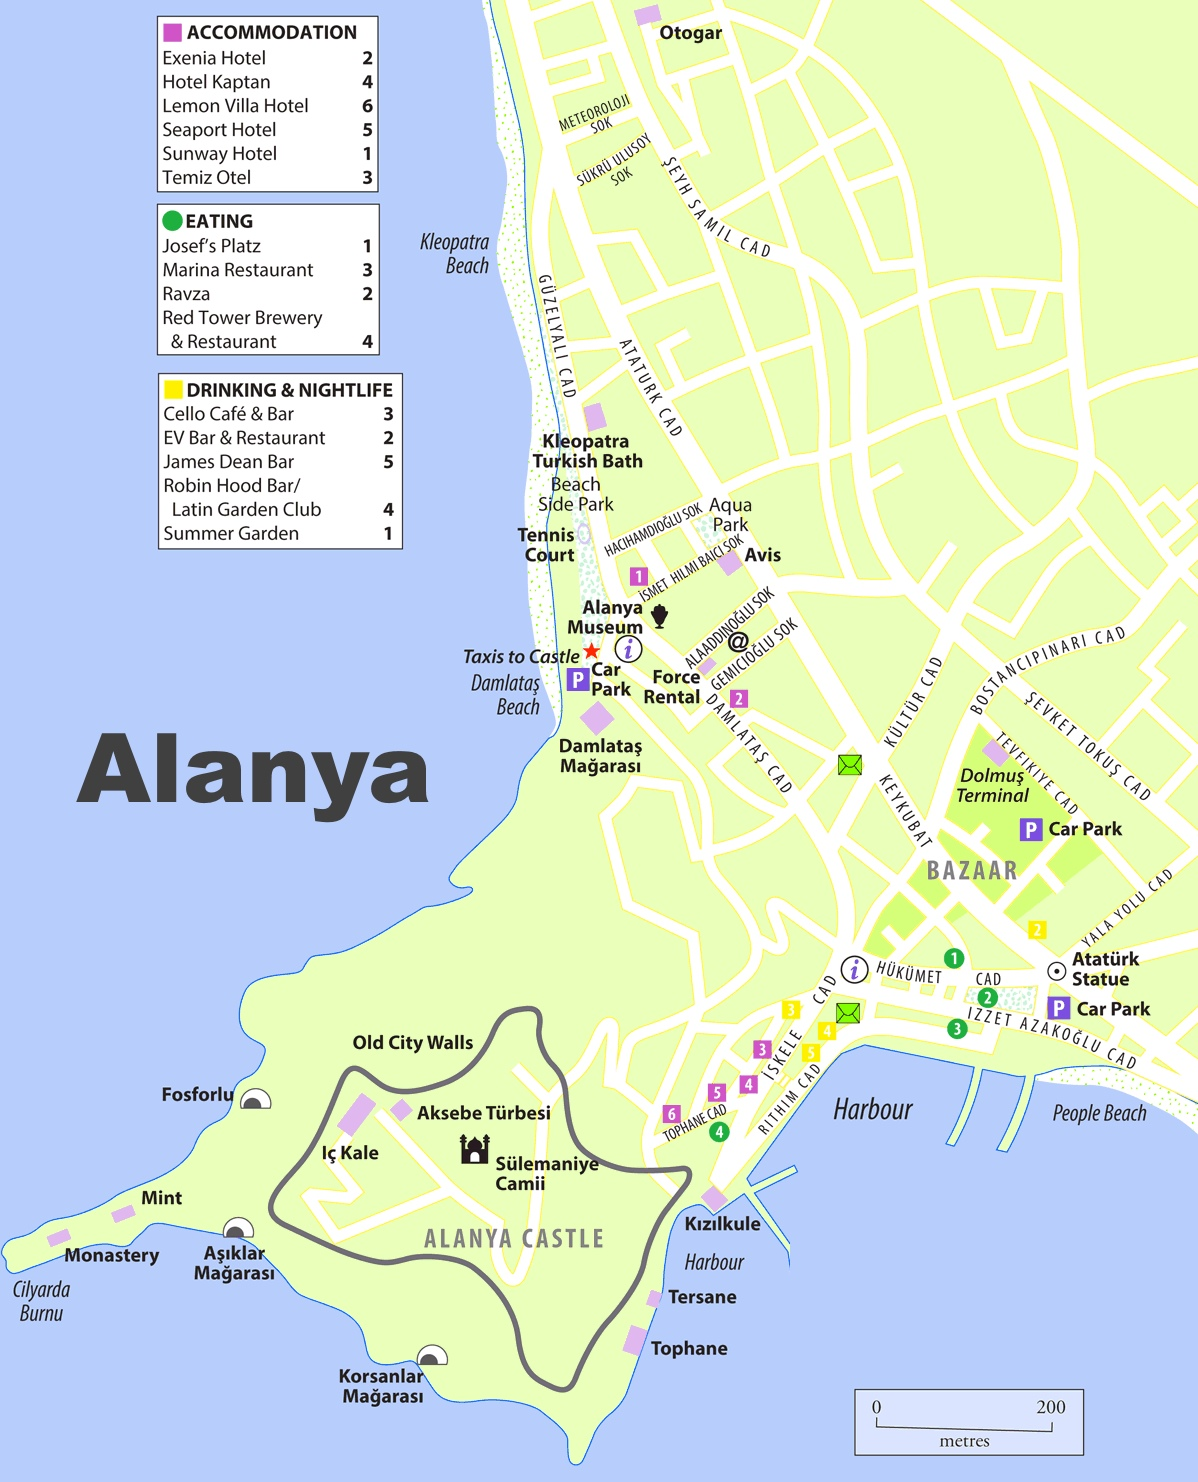 Alanya tourist map